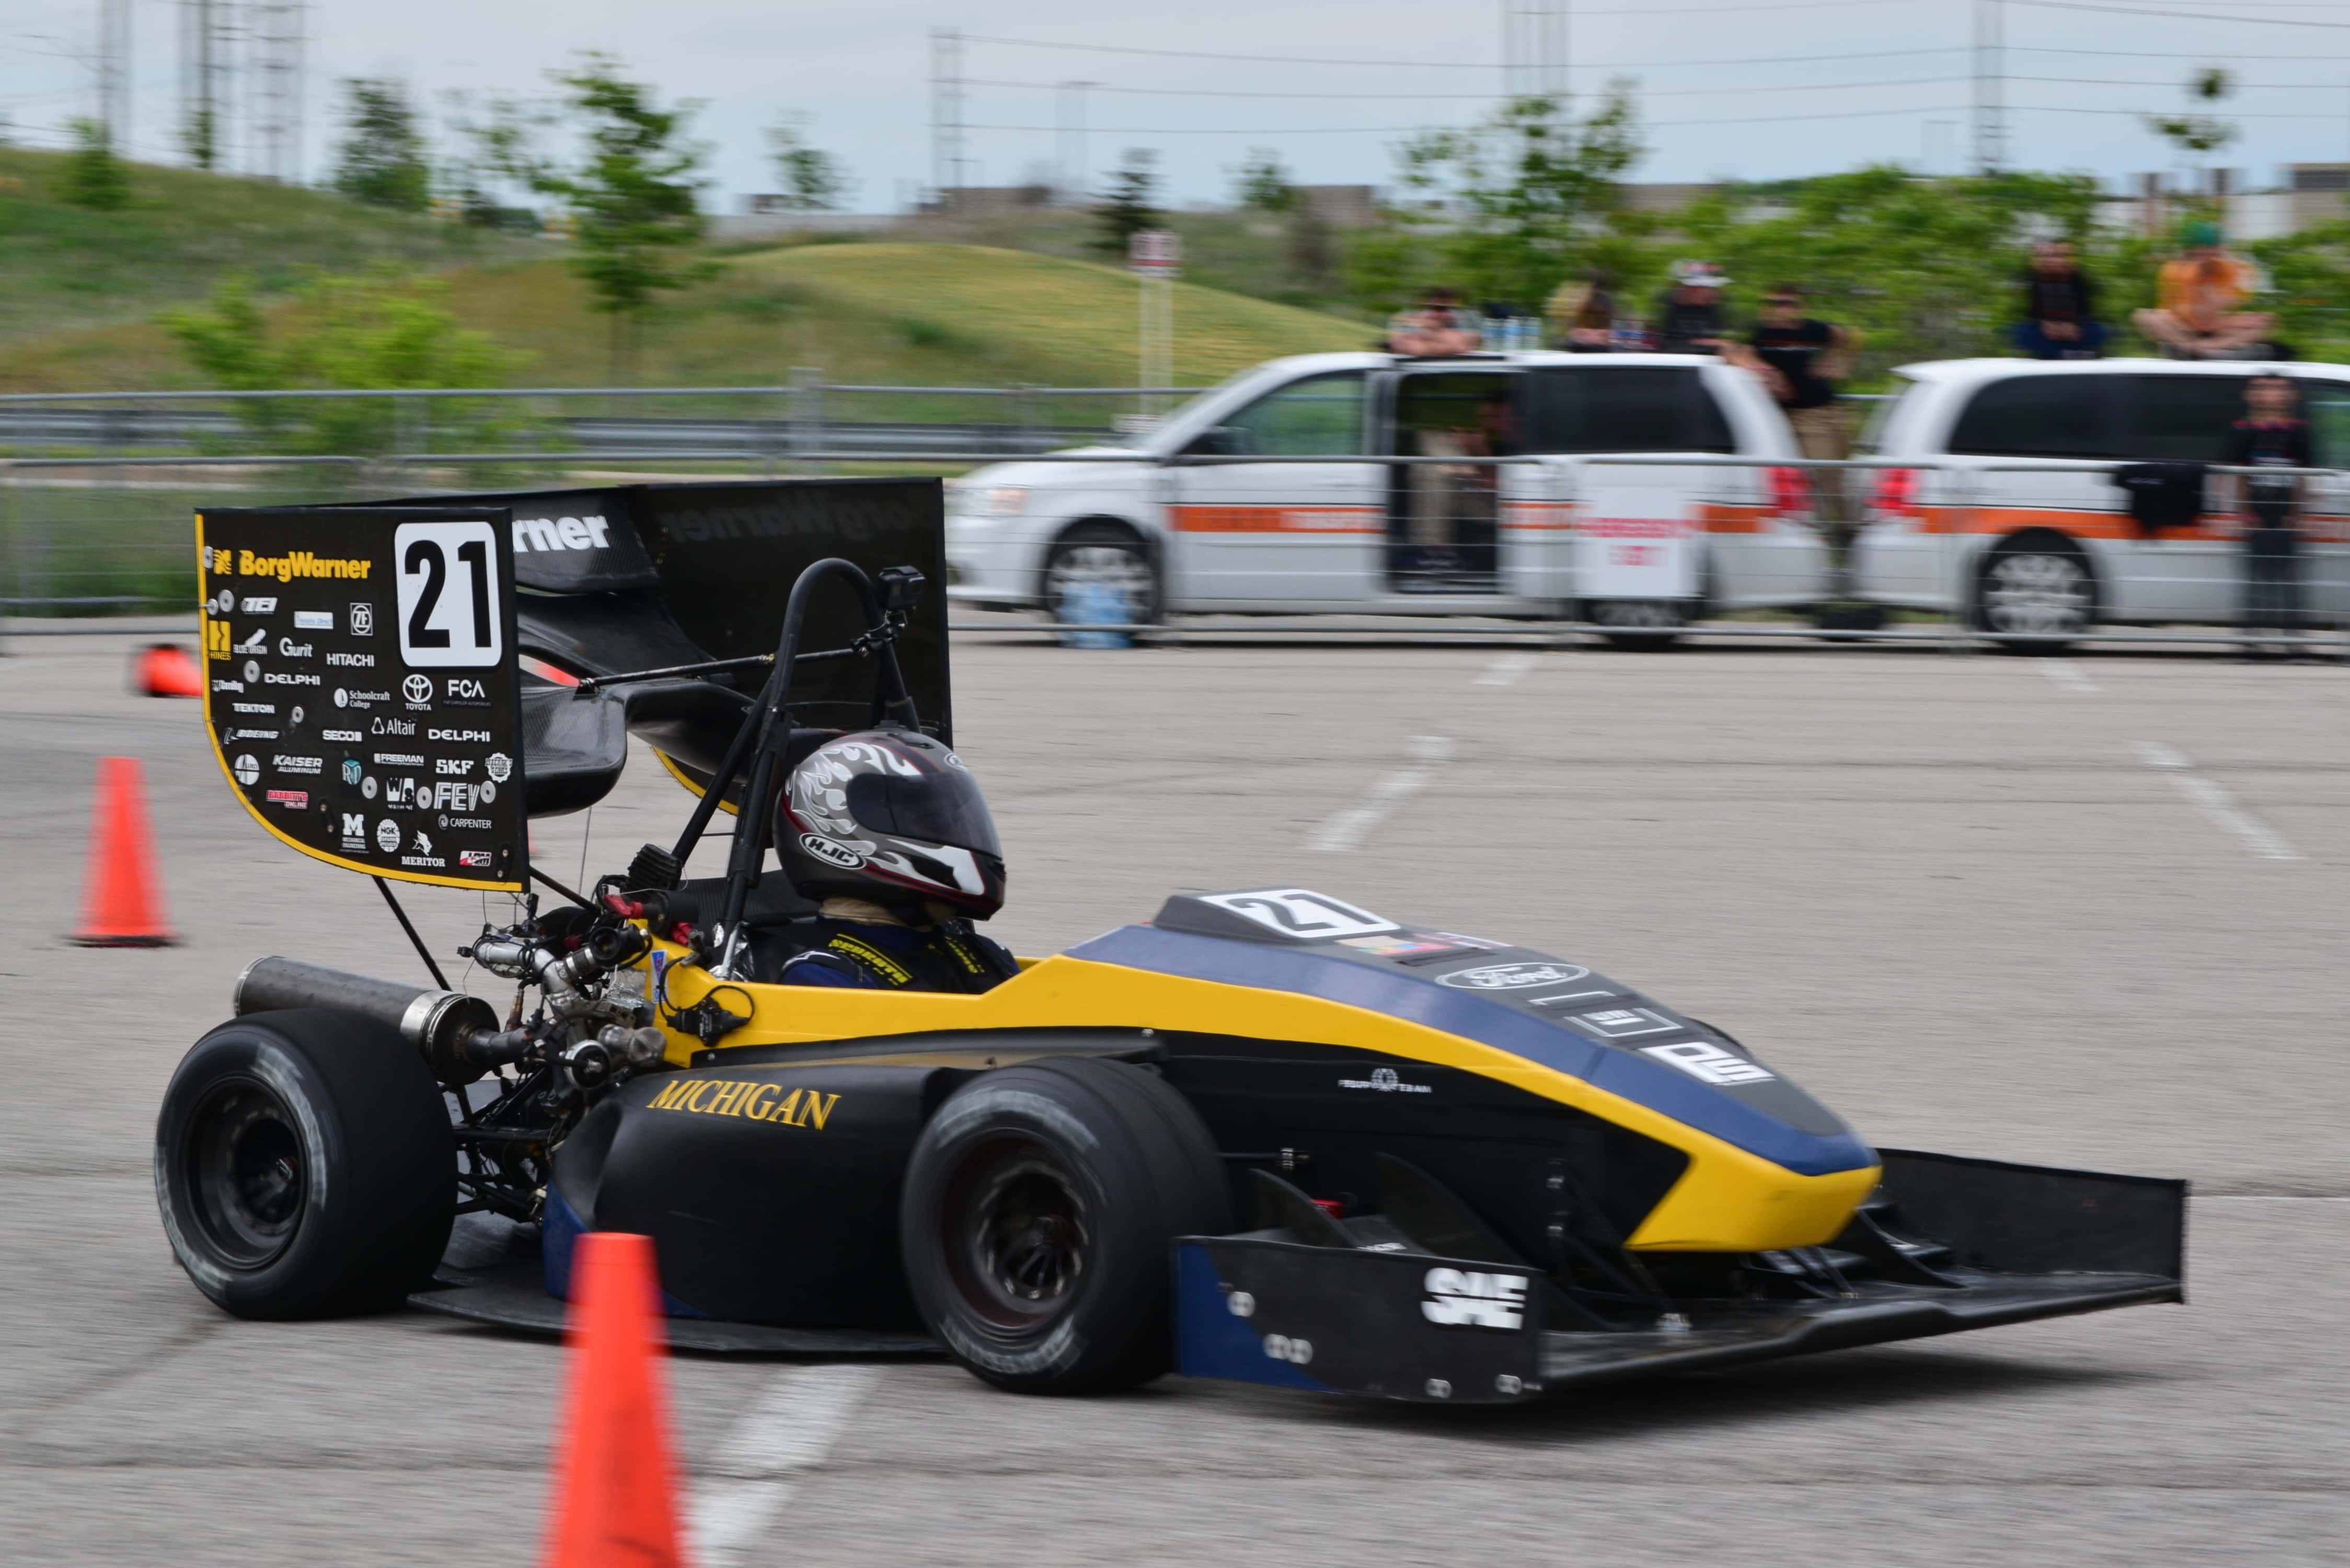 michigan formula sae